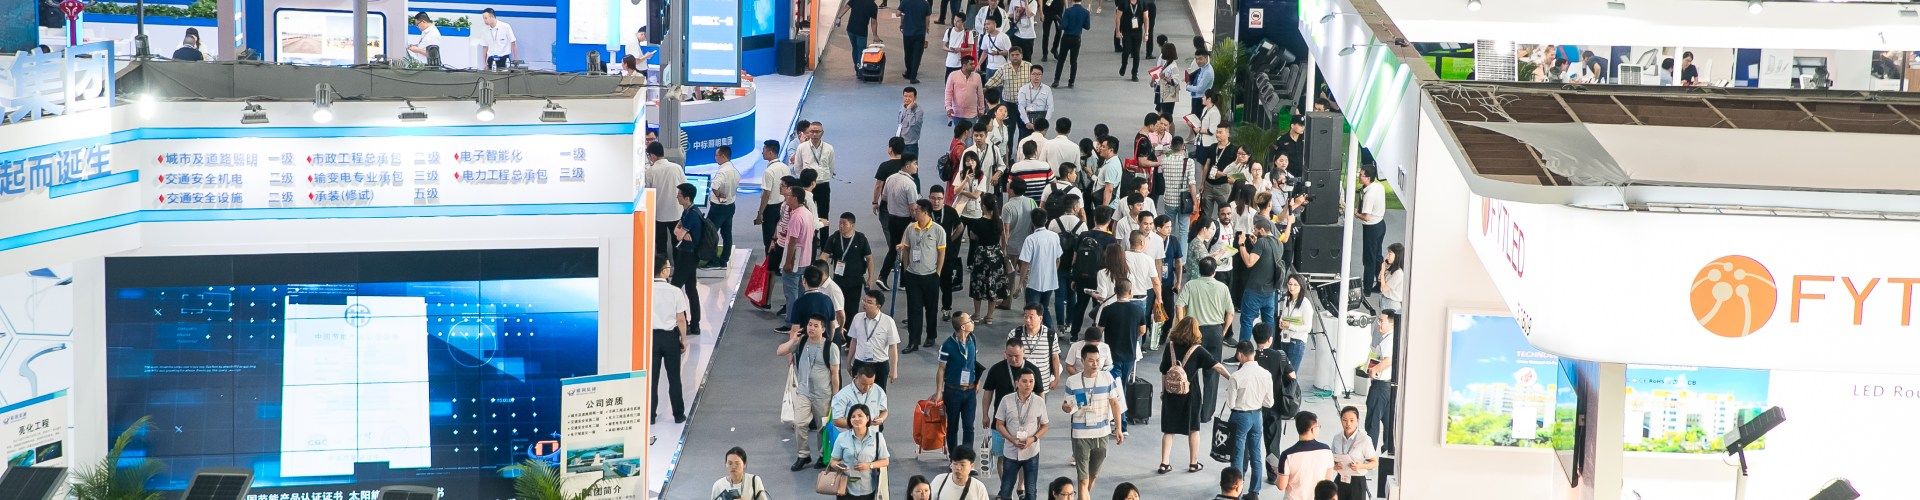 25th Guangzhou International Lighting Exhibition Rescheduled For 2020